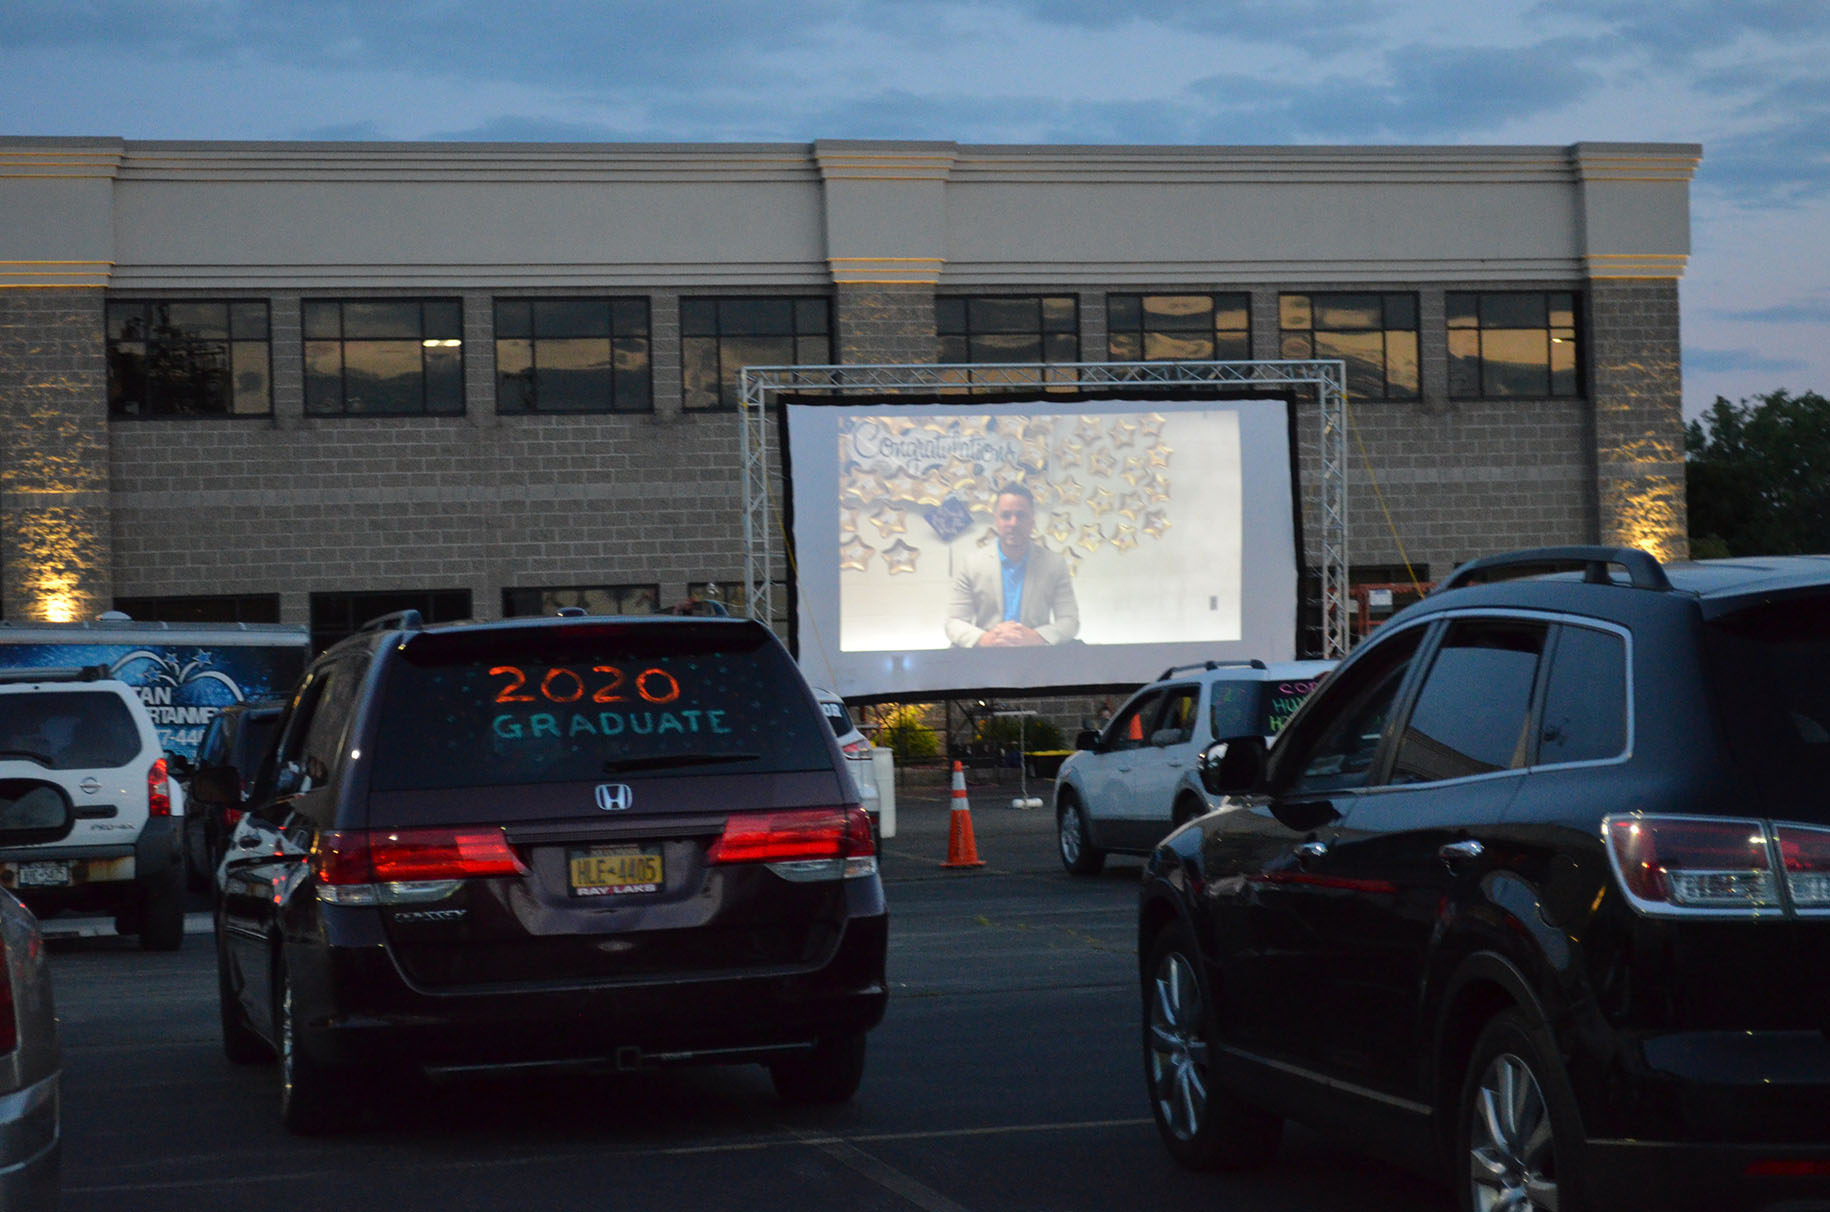 Families watch the drive-in graduation movie from their cars.